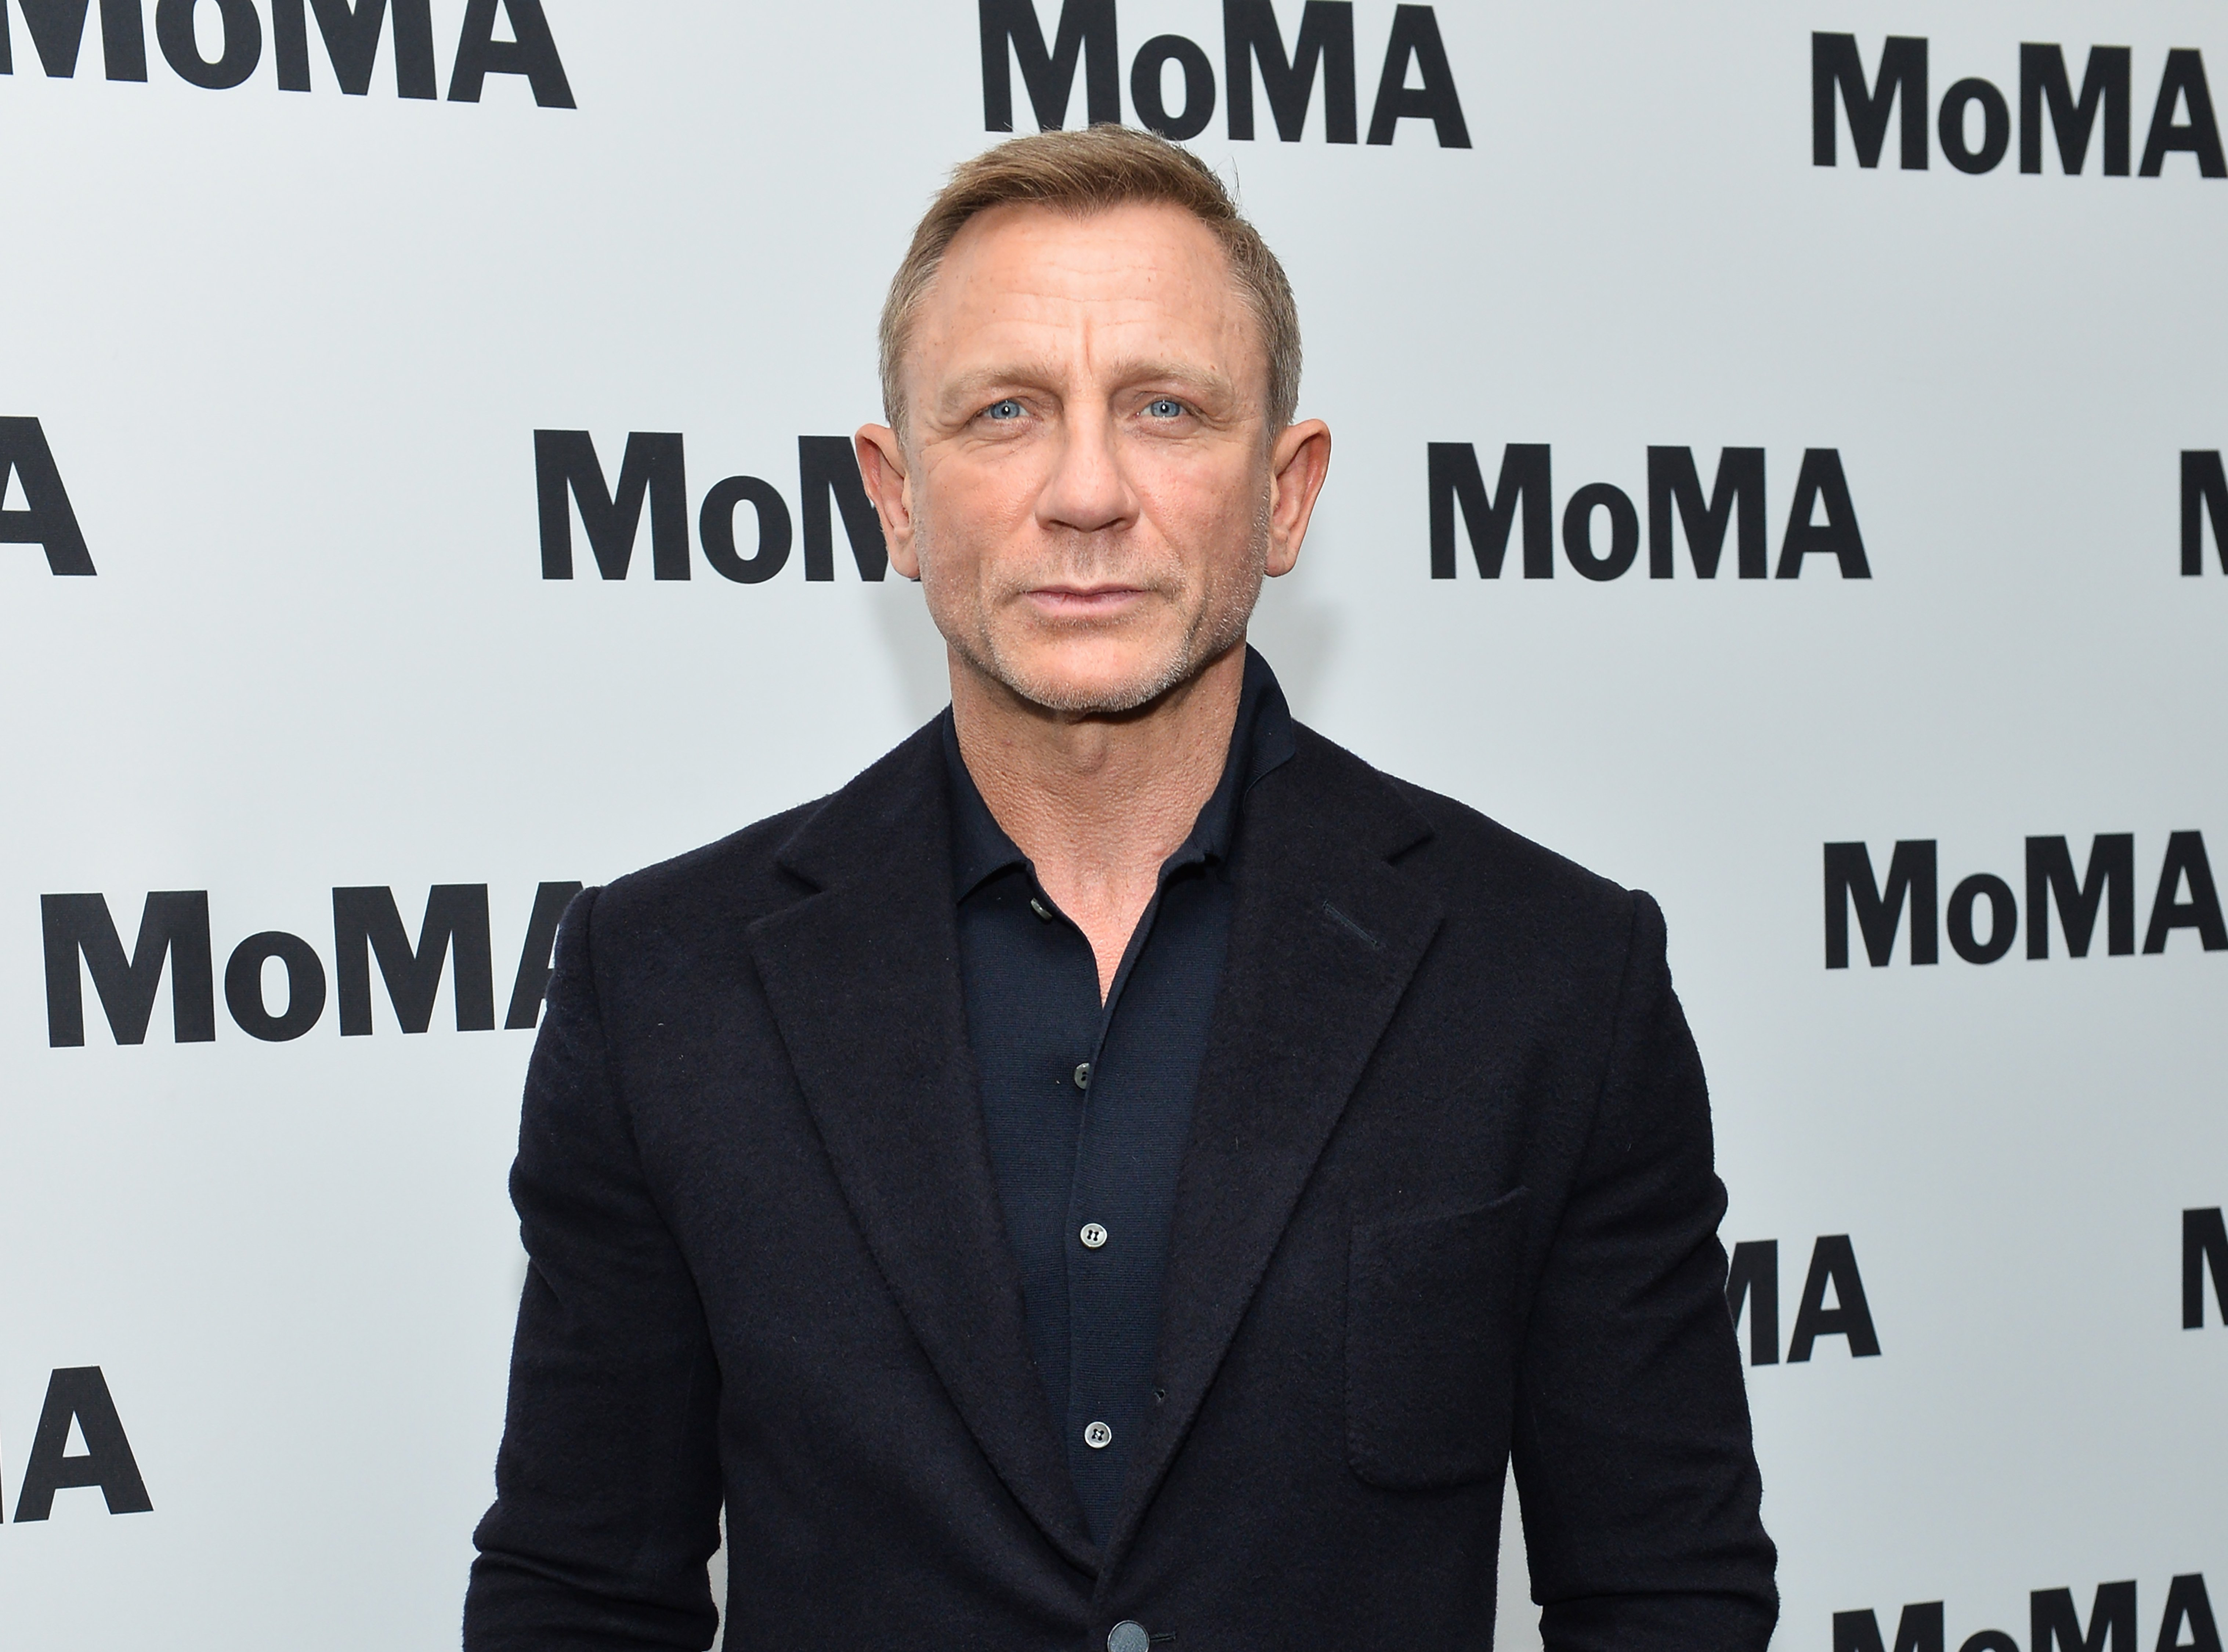 """Daniel Craig attends """"In Character: Daniel Craig"""" in New York City on March 3, 2020   Photo: Getty Images"""